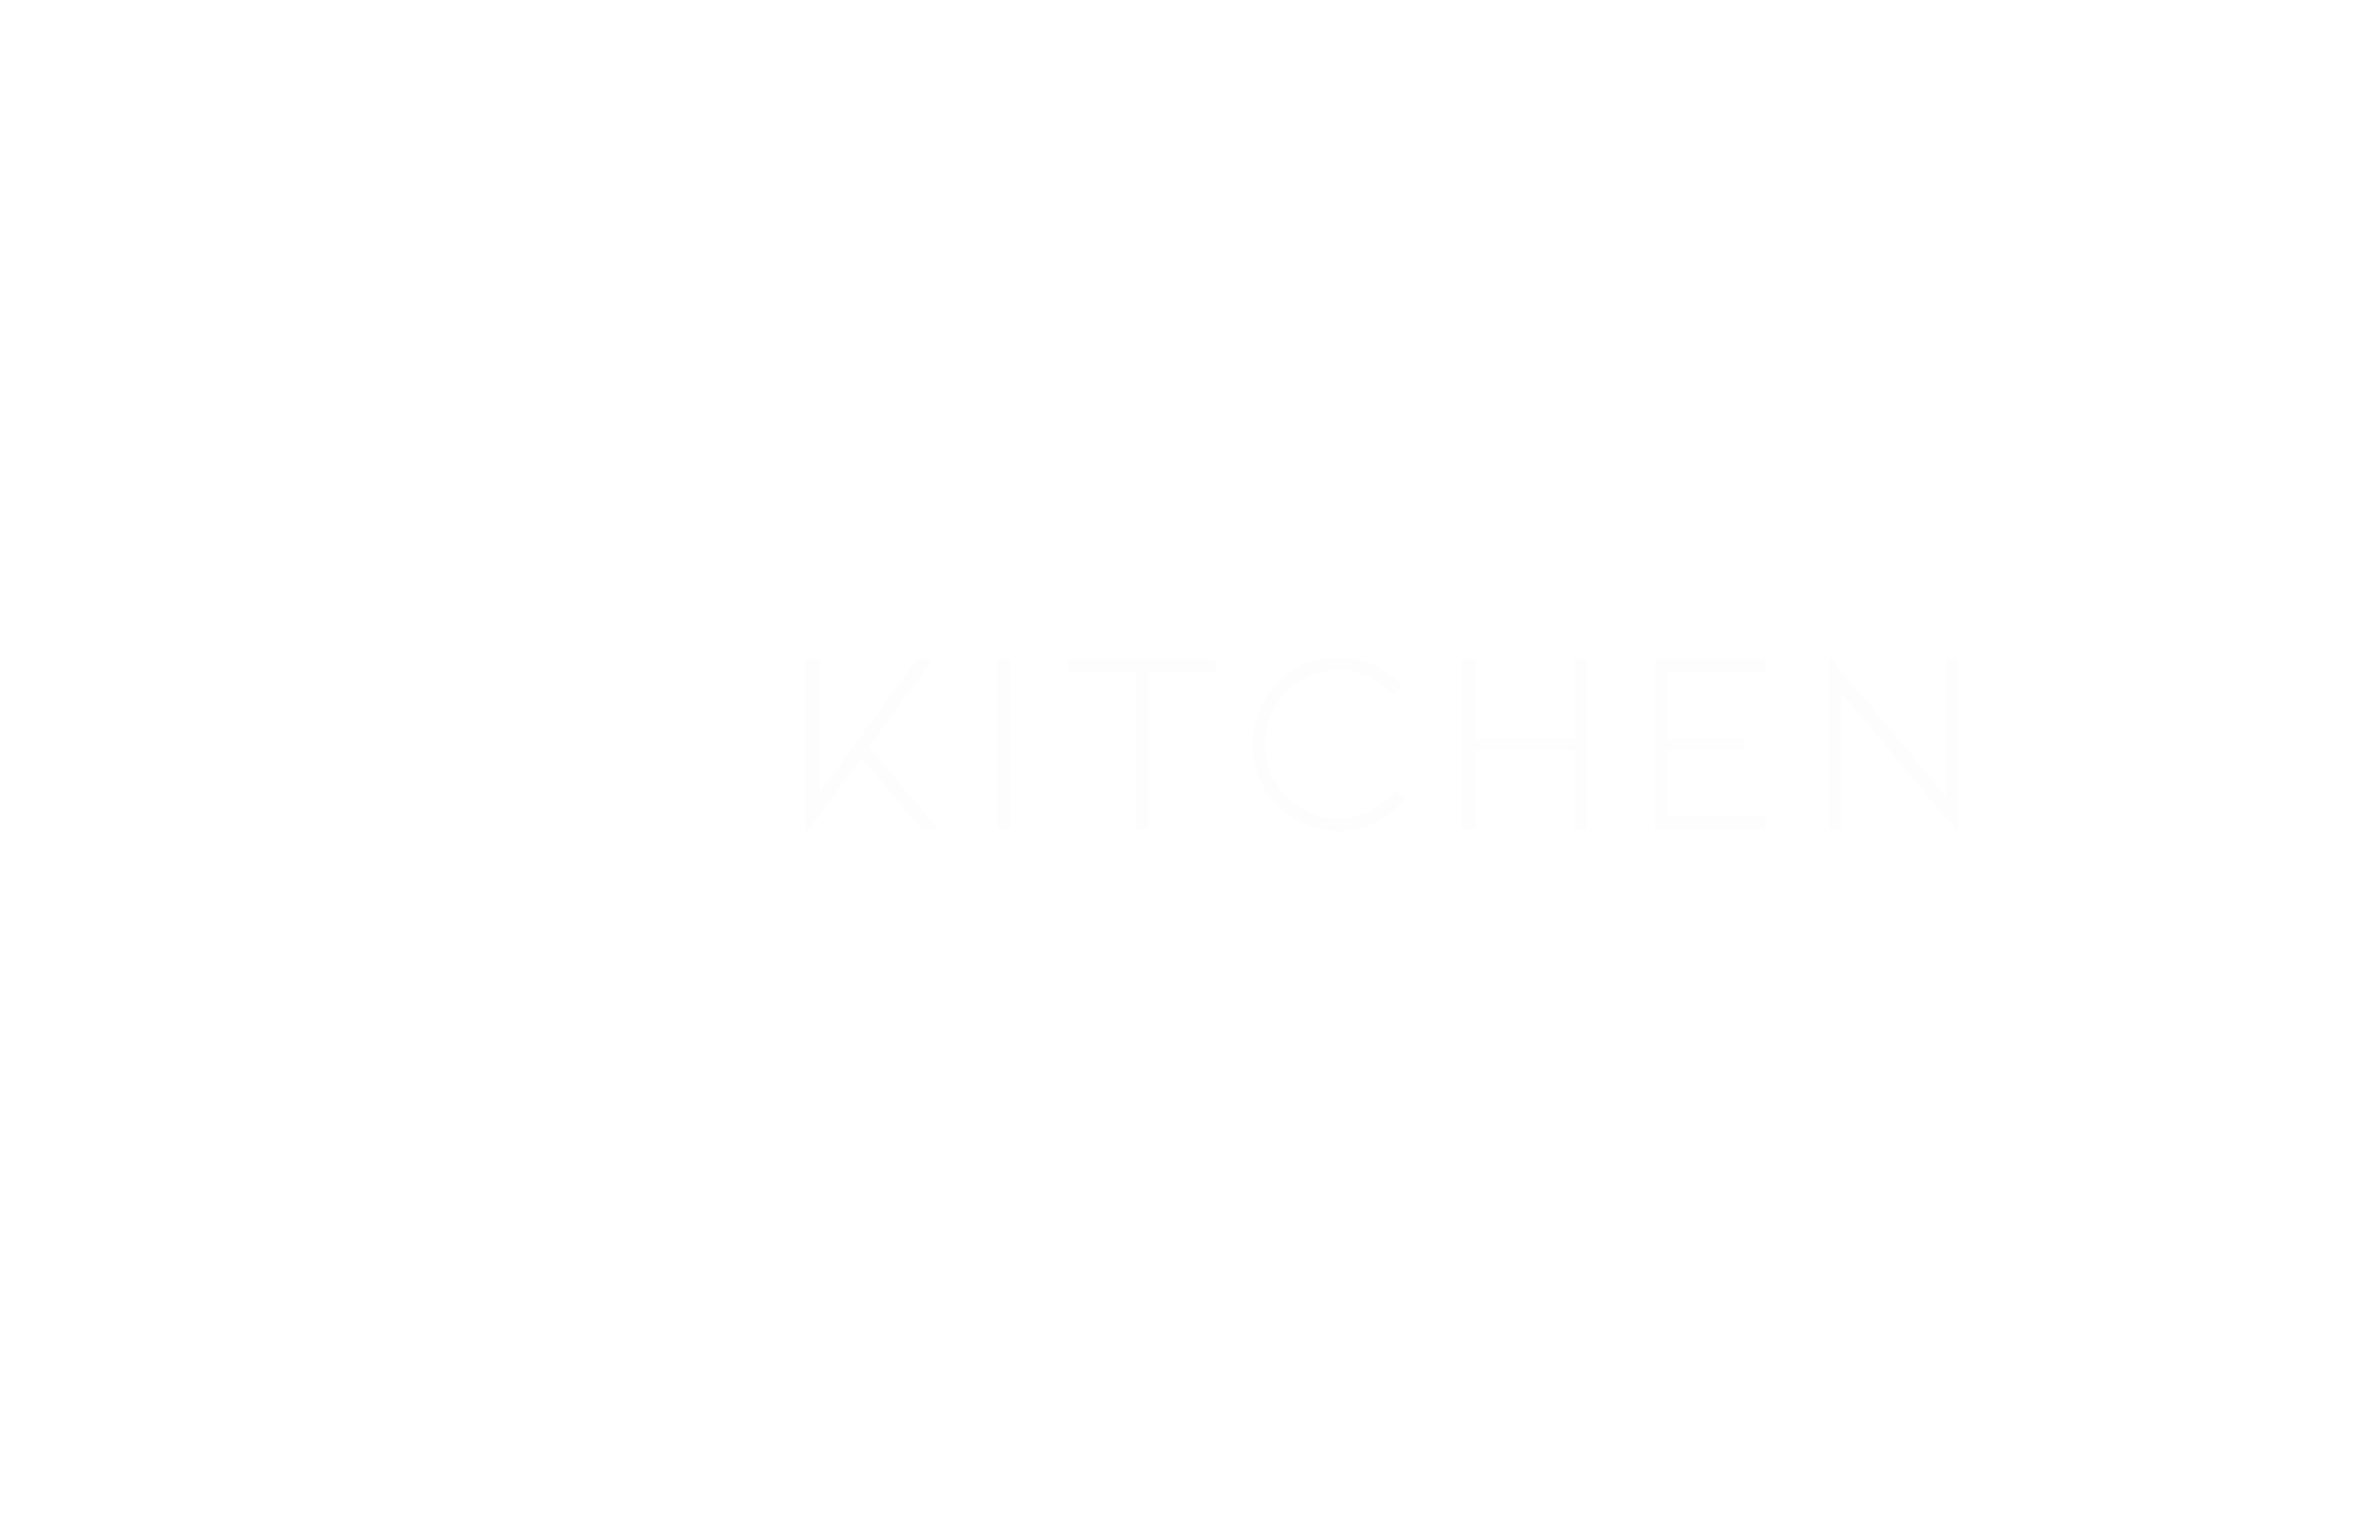 8 KITCHEN